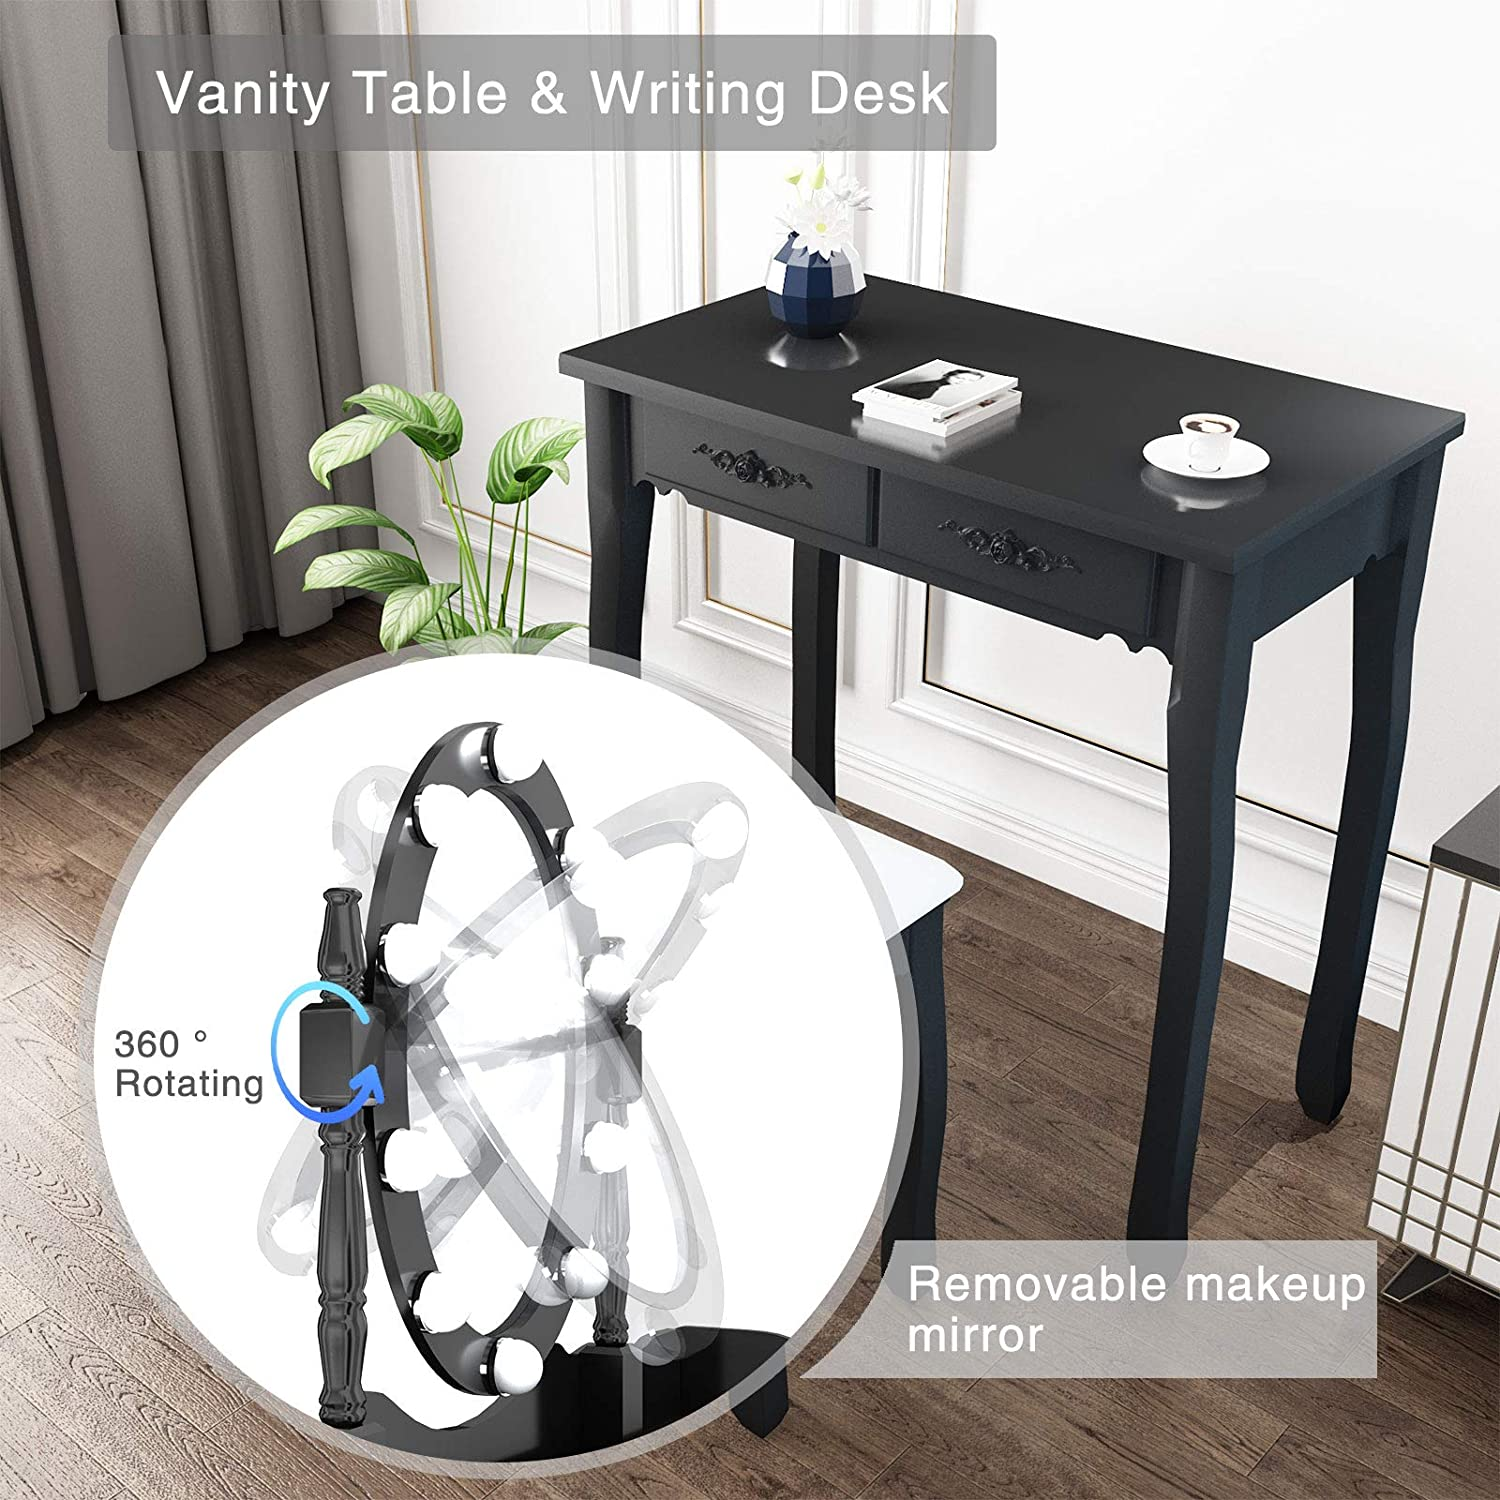 Modern Vanity Makeup Table with 4 Large Drawers and Cushioned Stool Women Bedroom for Girls mecor Dressing Table Set 10 LED Light with Adjustable Mirror White Makeup Vanity Table-4 drawers